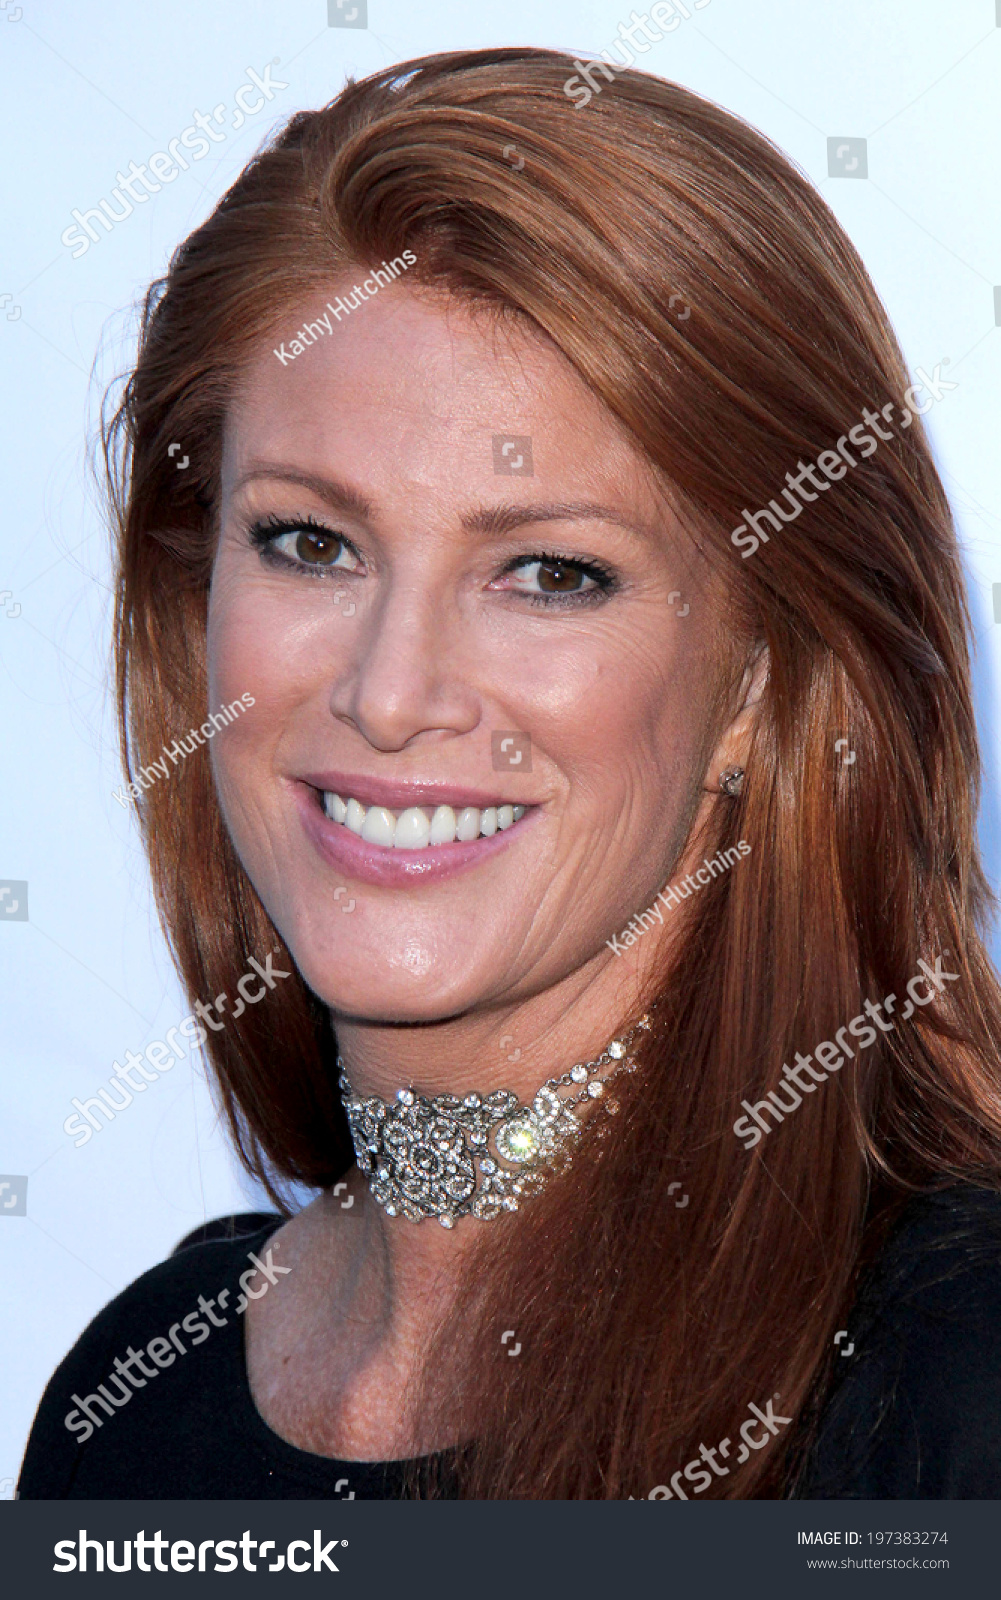 Angie Everhart Hot Videos los angeles may 29 angie everhart stock photo 197383274